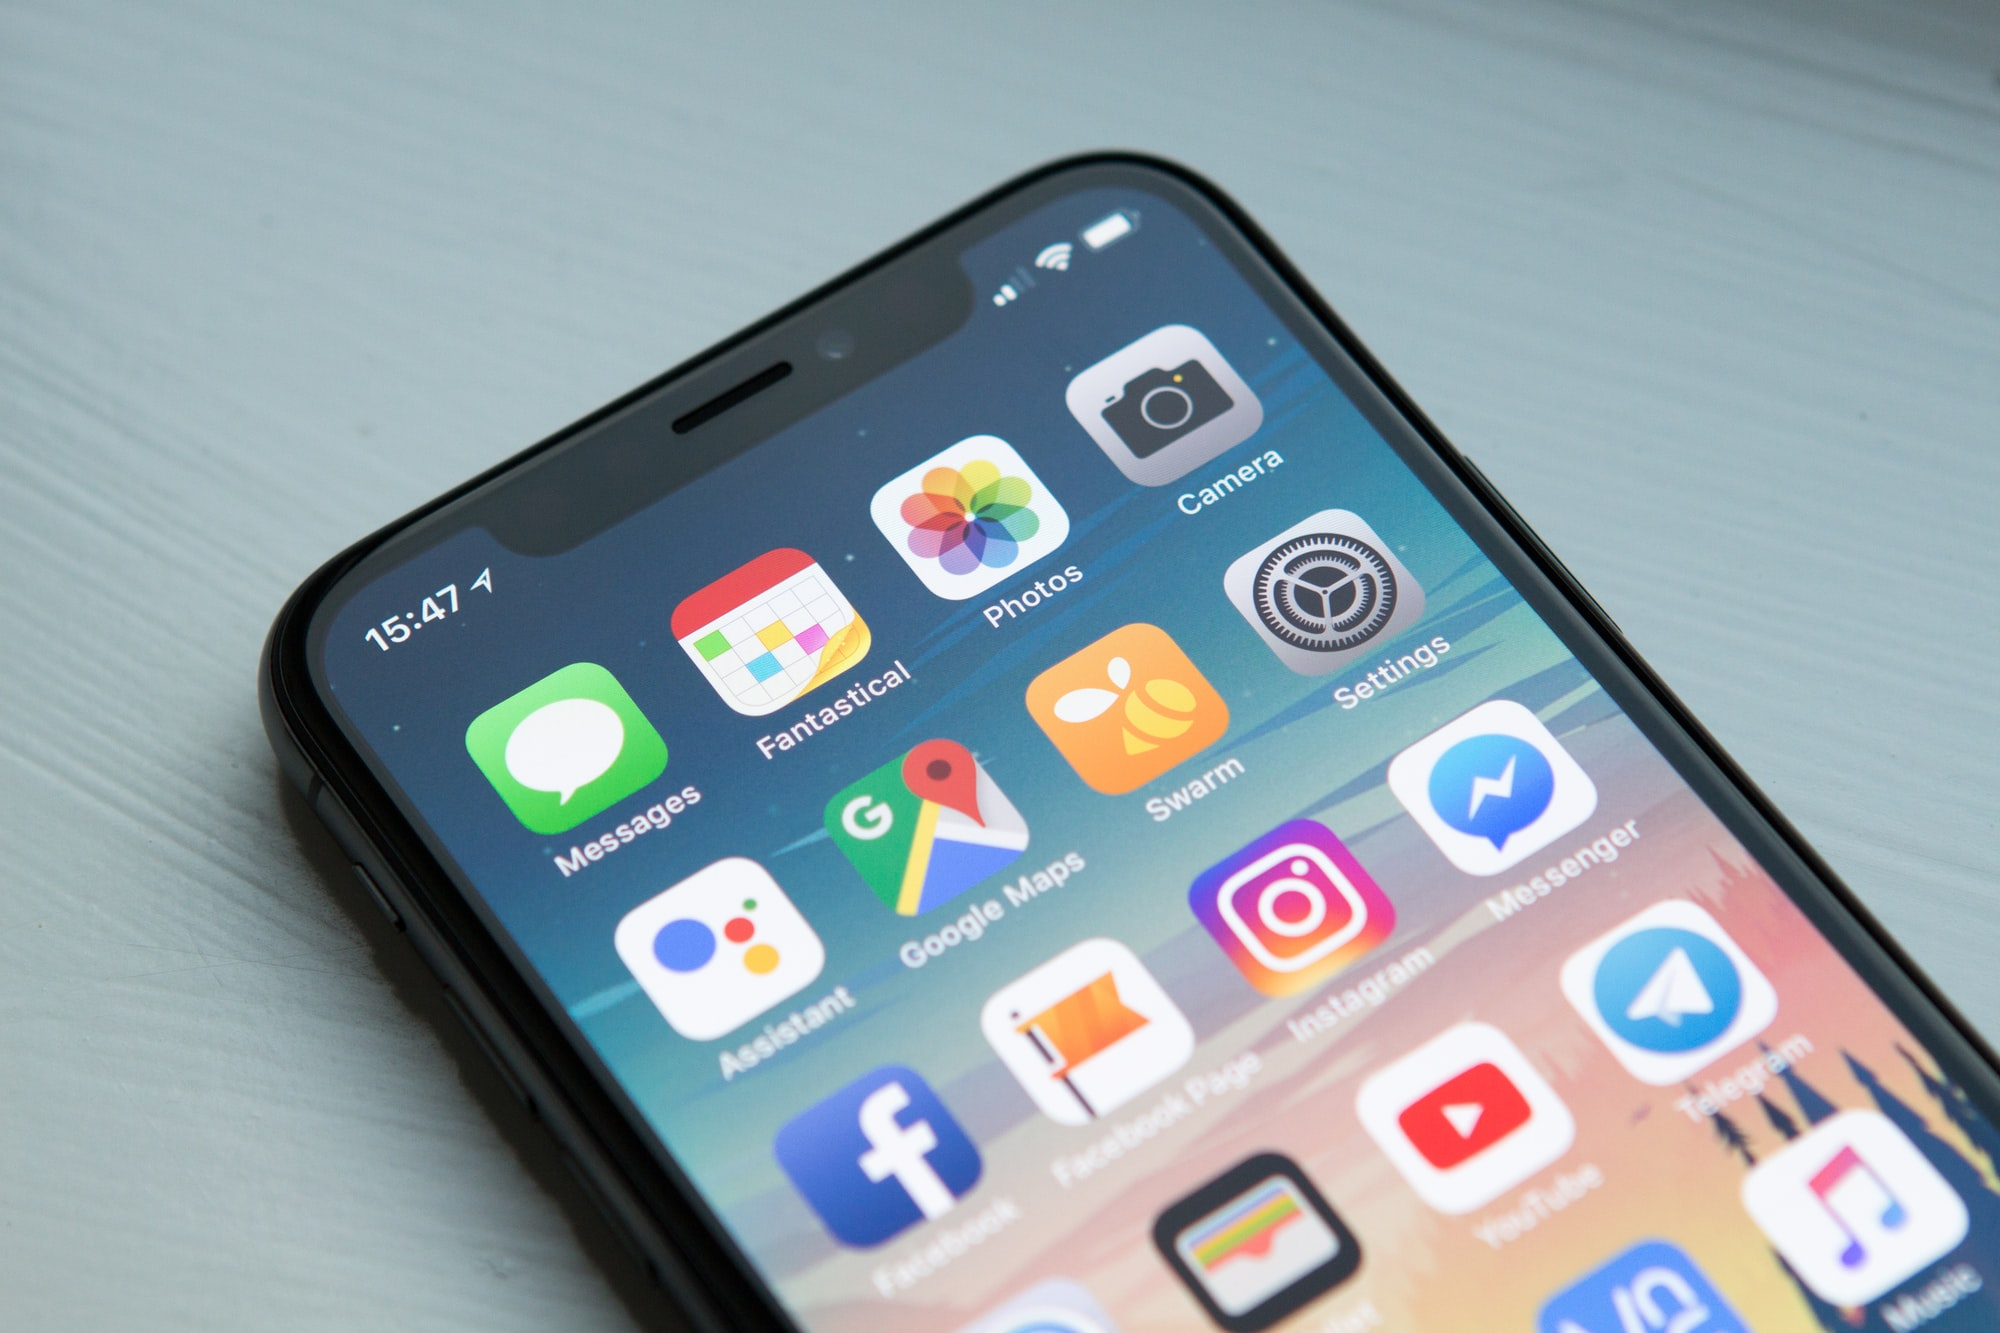 Why hire a mobile developer in 2020 - iPhoneX Screen